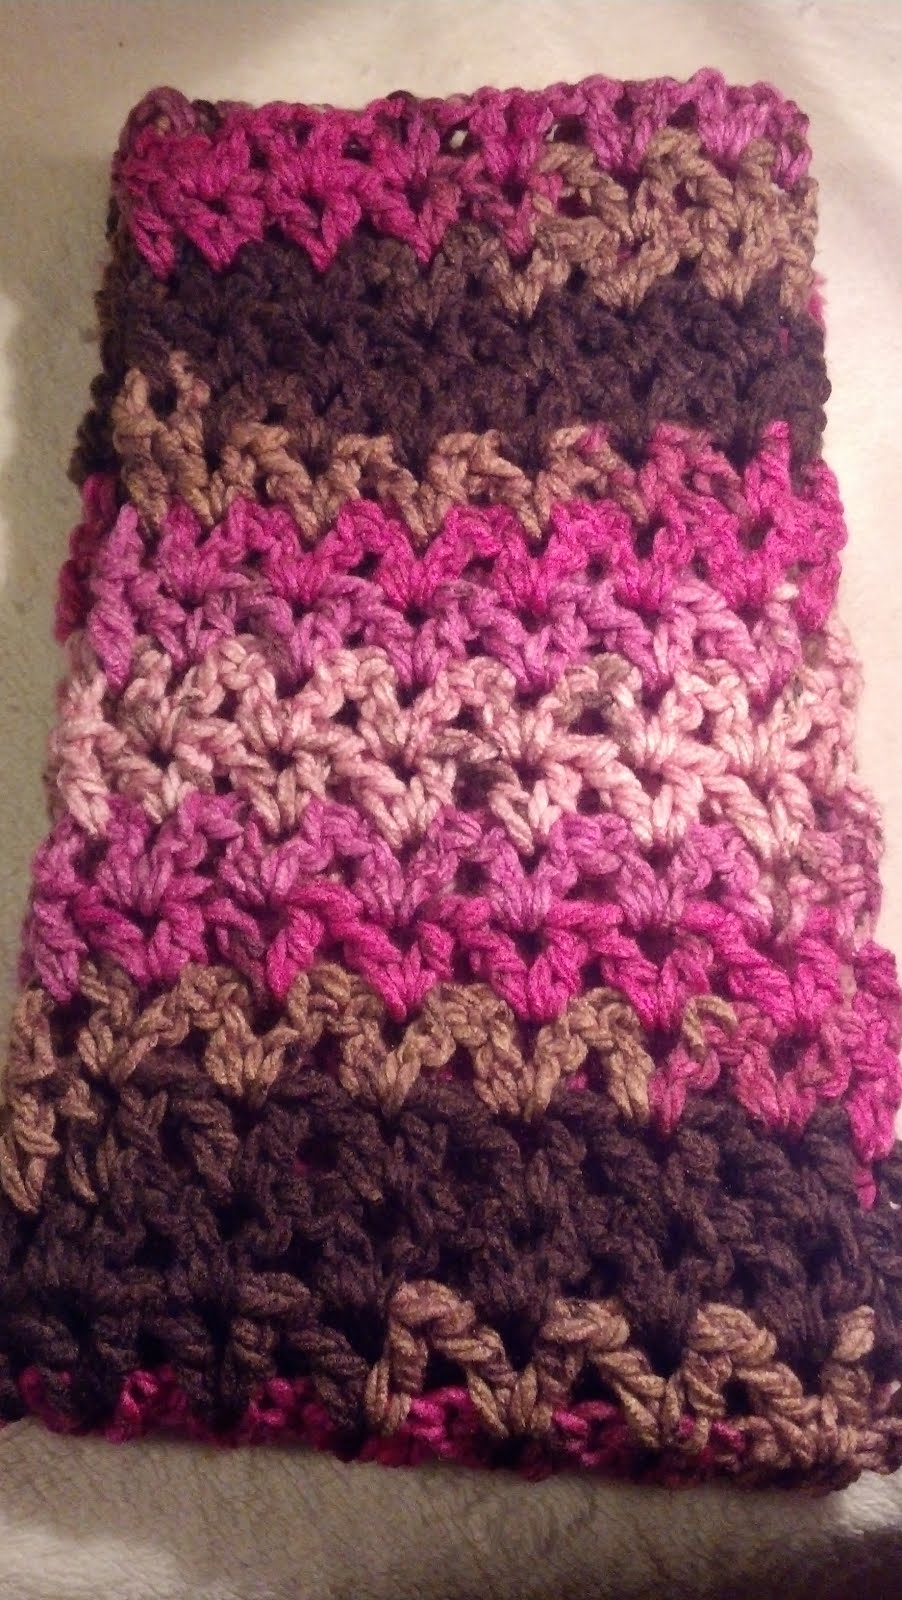 Crochet Patterns For Loops And Threads Charisma ~ manet for .